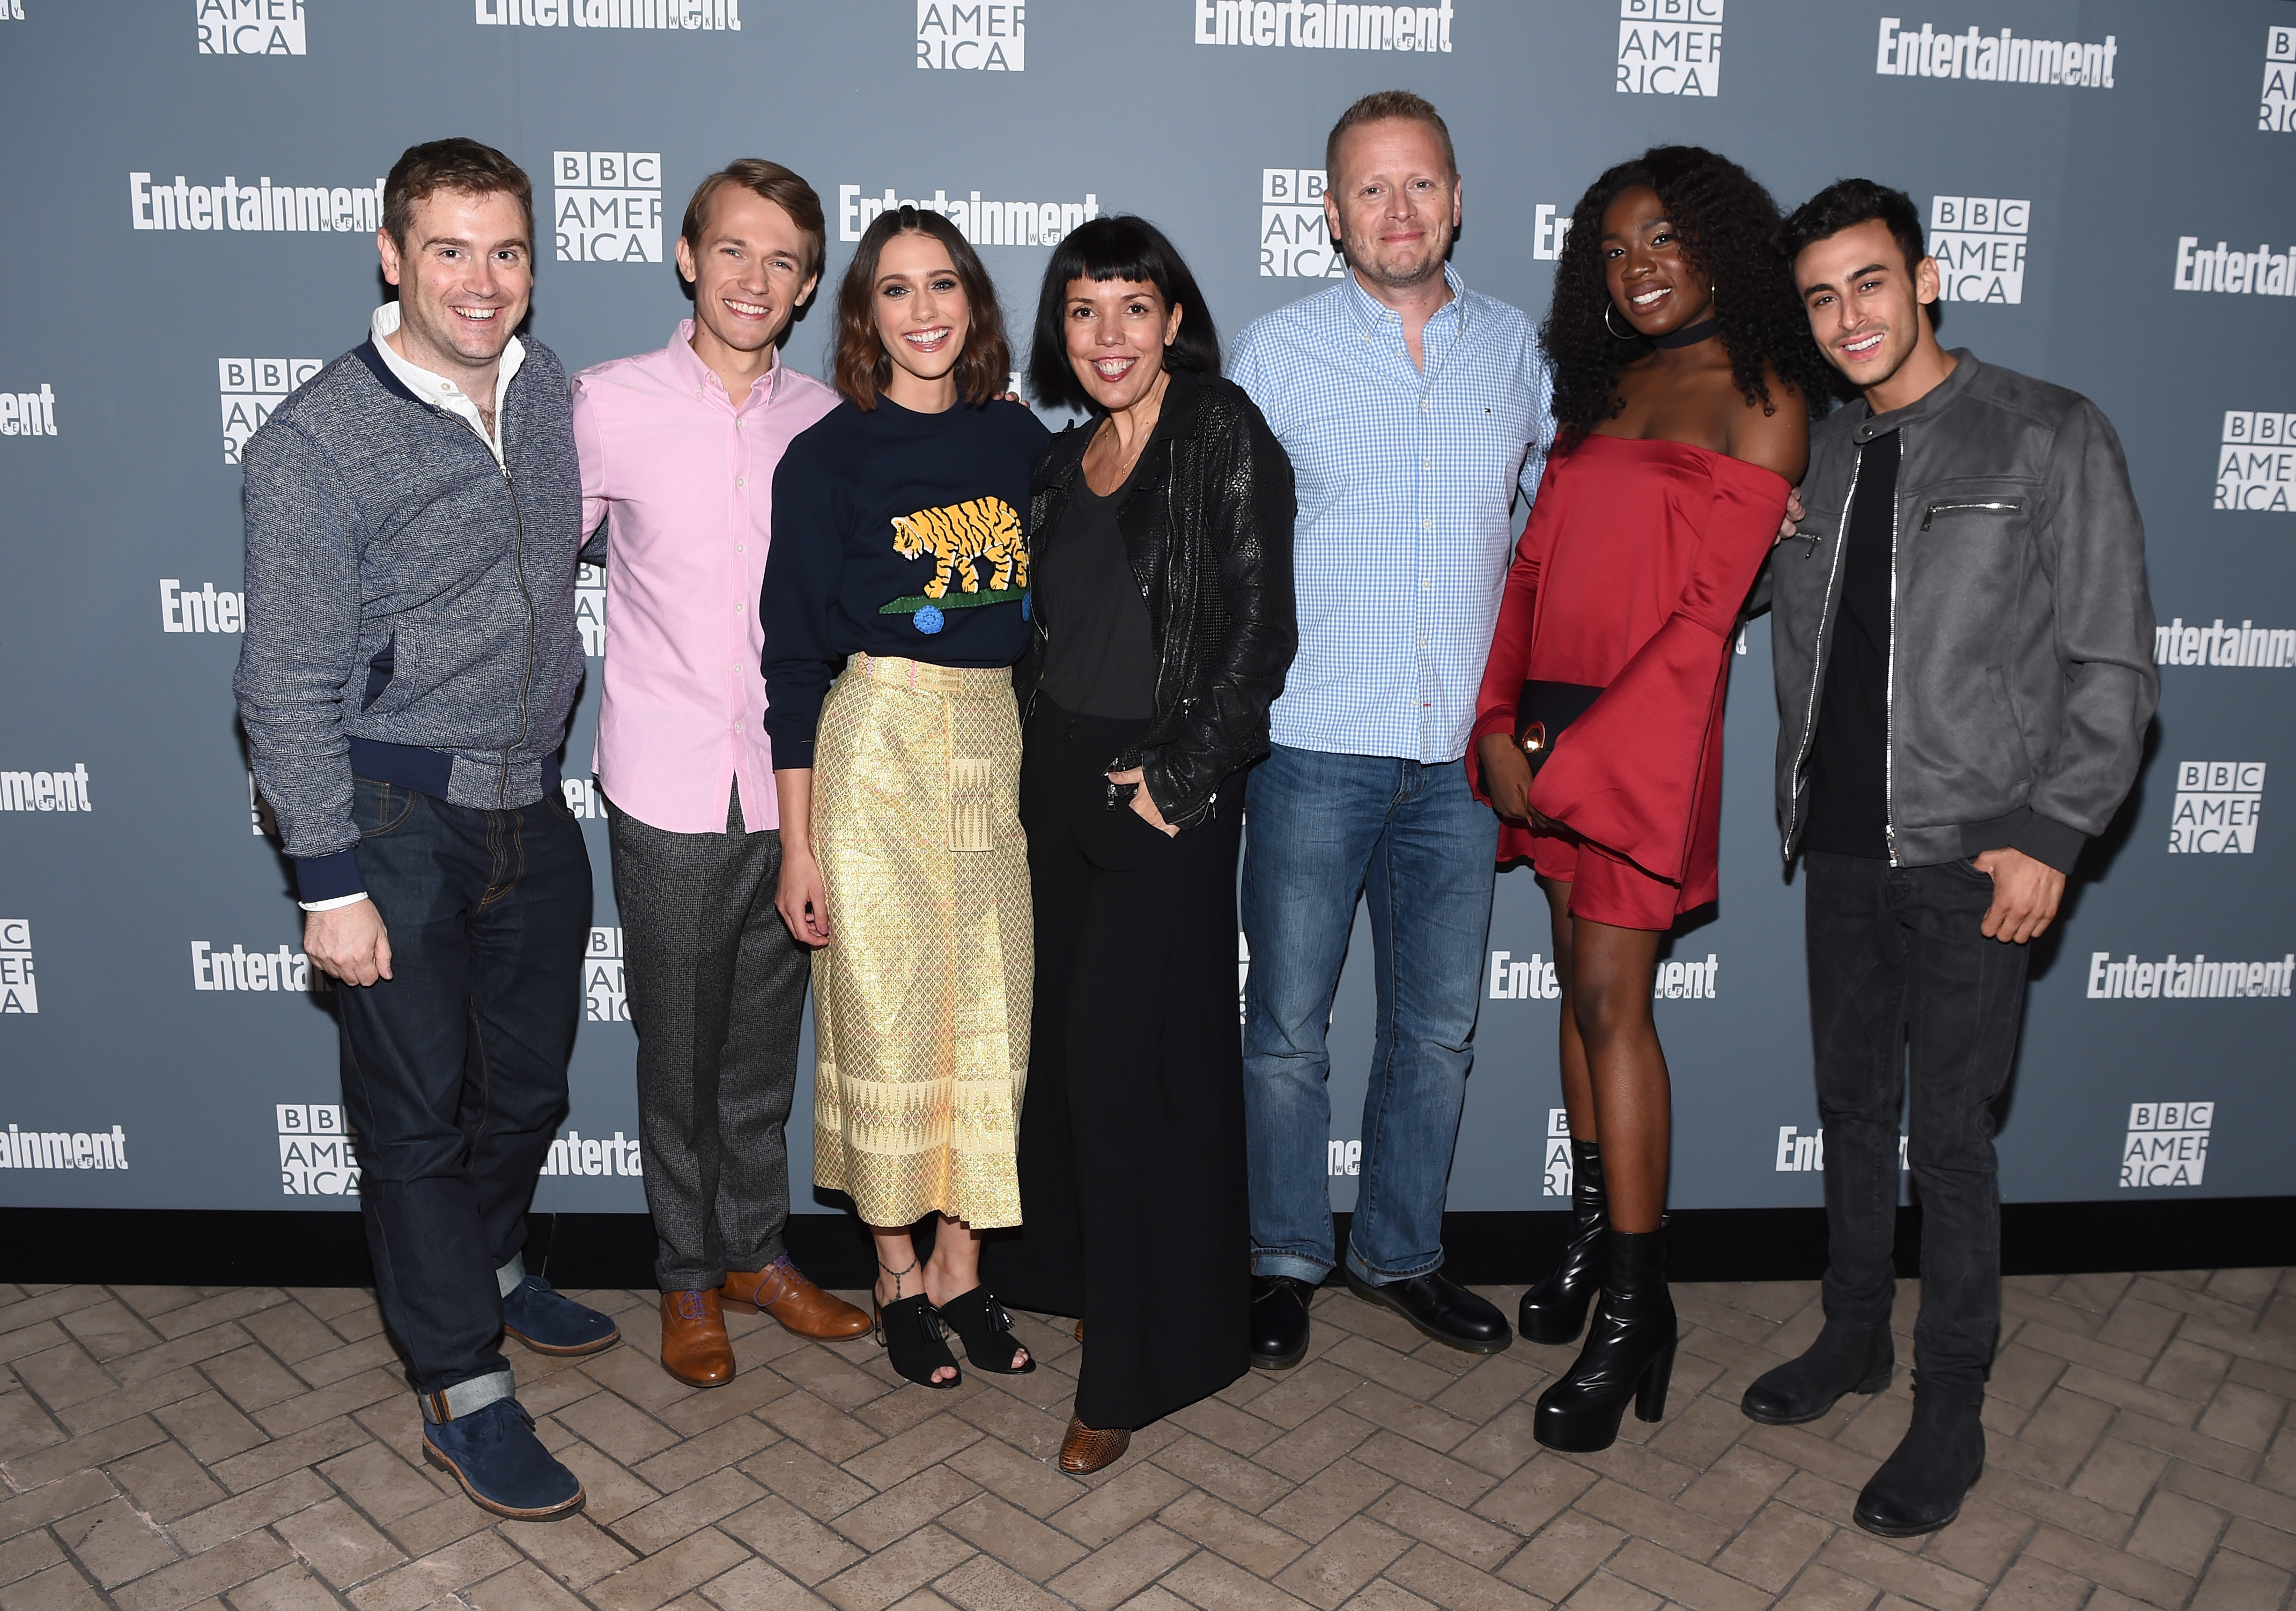 NEW YORK, NY - OCTOBER 06:  Brian Minchin, Greg Austin, Sophie Hopkins, Sarah Barnett, Patrick Ness, Vivan Oparah, and Fady Elsayed attend EW Hosts An Evening With BBC America on October 6, 2016 in New York City.  (Photo by Dave Kotinsky/Getty Images for Entertainment Weekly)